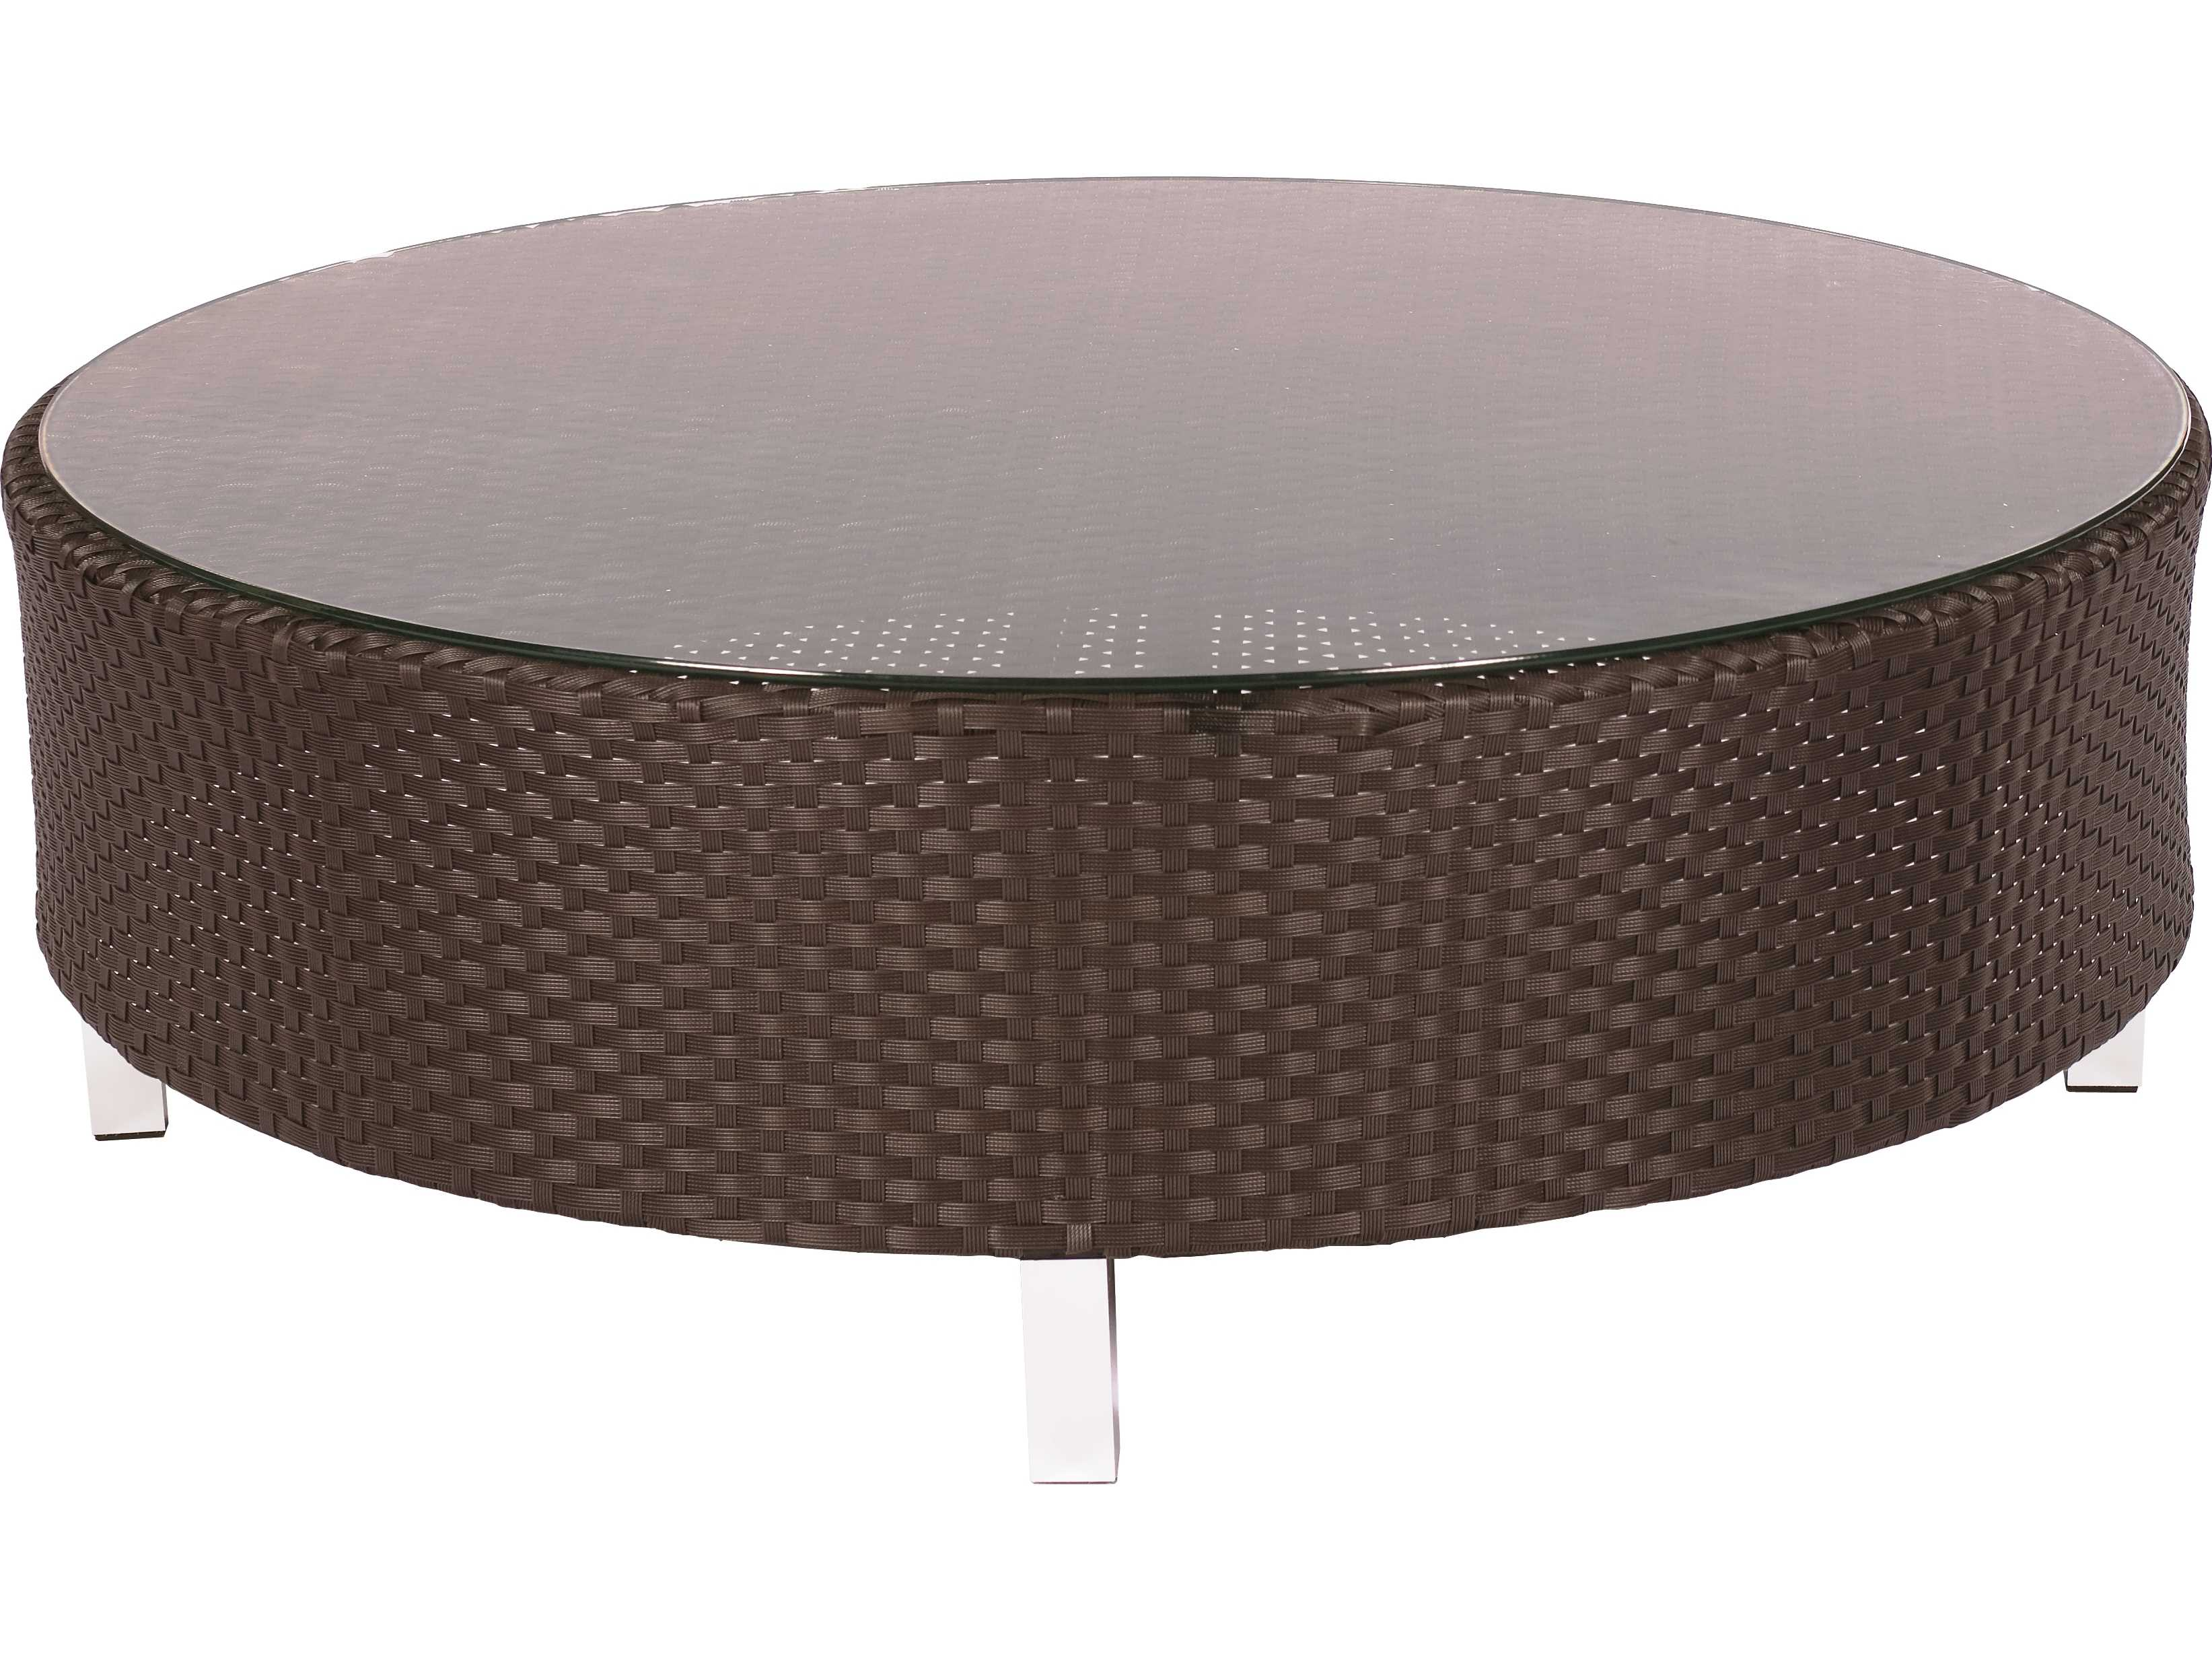 Suncoast Radiate Arc Wicker 48 39 39 Round Glass Coffee Table D652